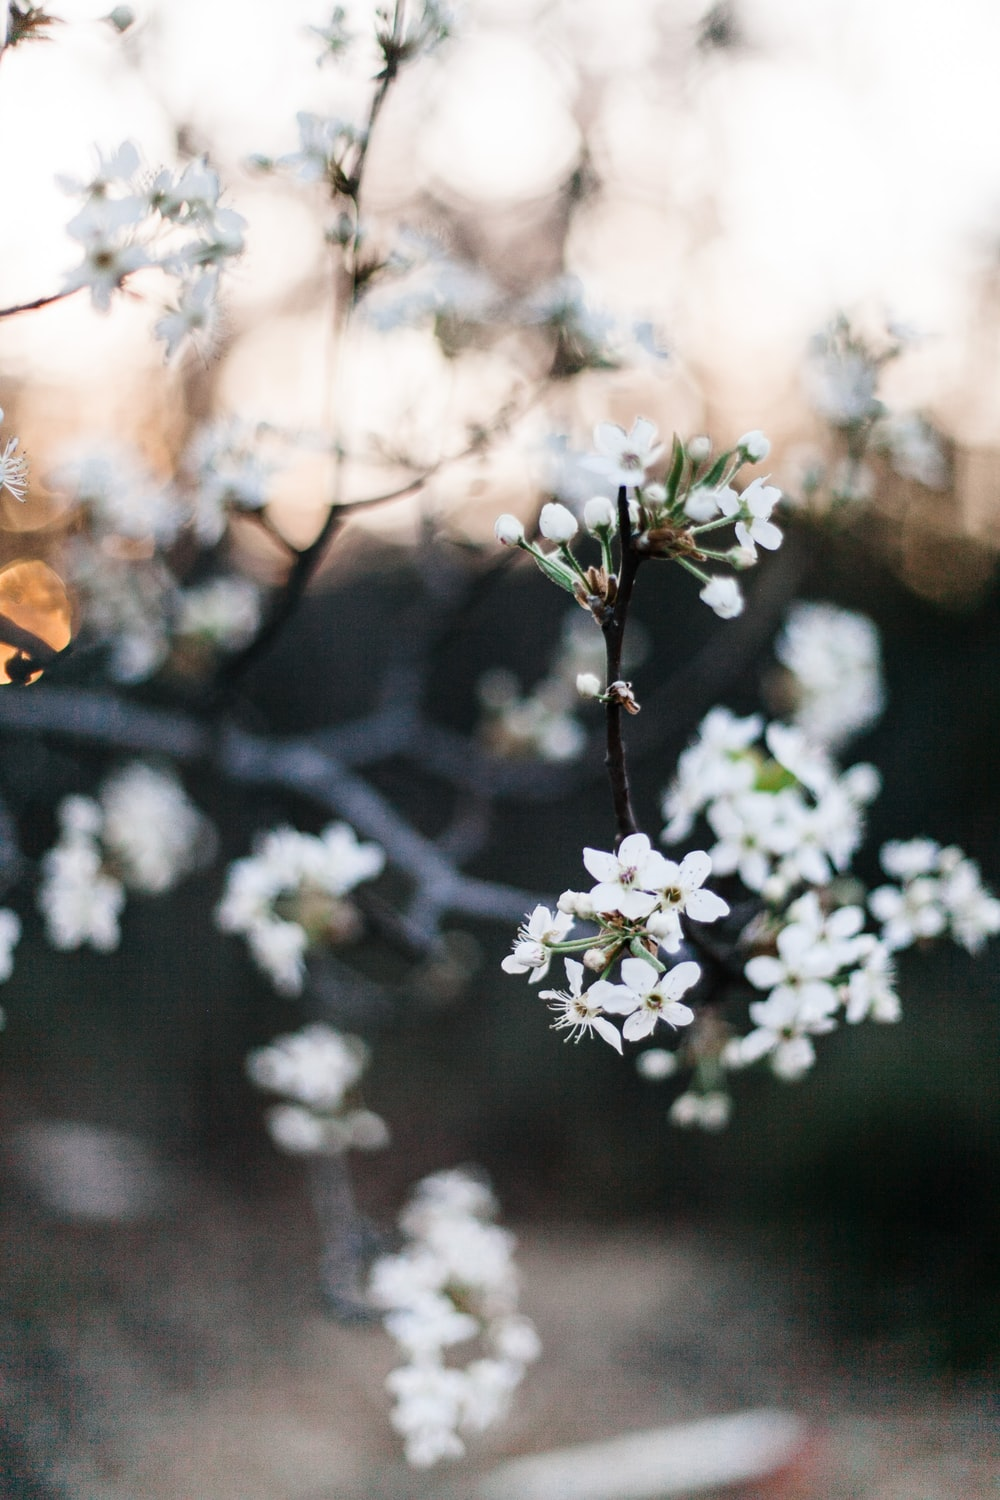 Blossom tree white flower and outdoors hd photo by heather mount selective focus photography of white petaled flower at daytime mightylinksfo